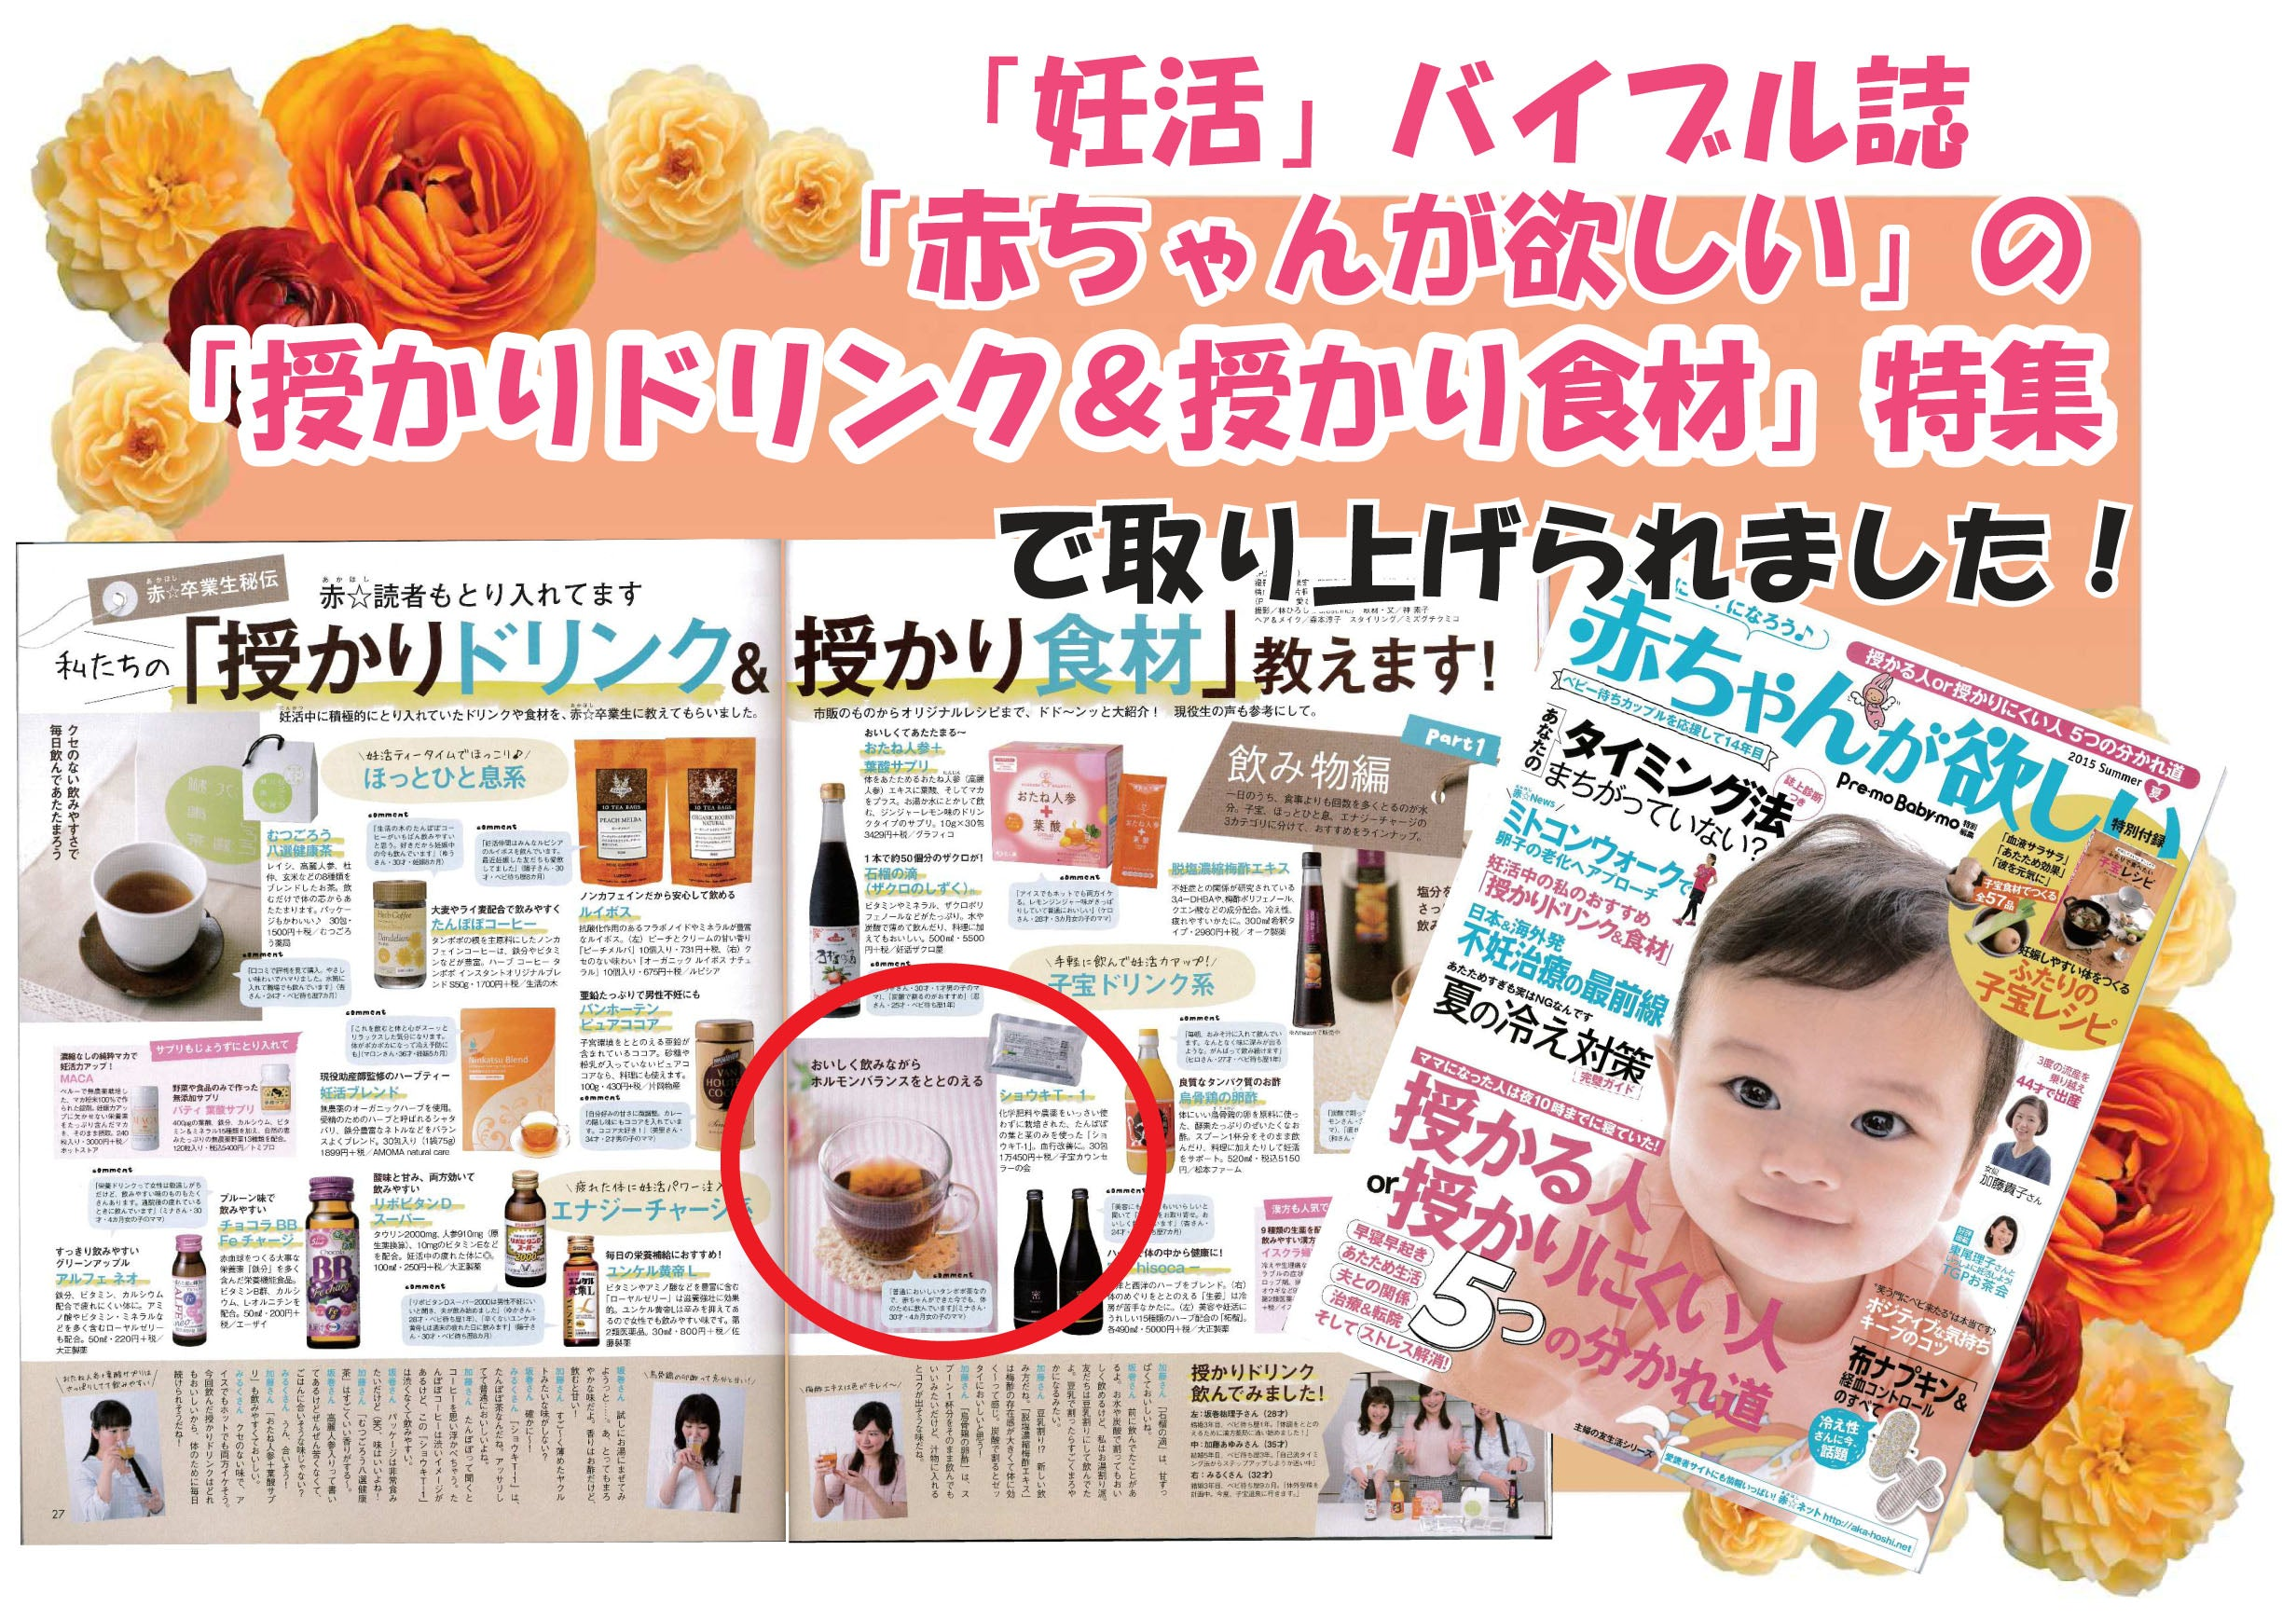 Shawkea products published in Pregnant Life